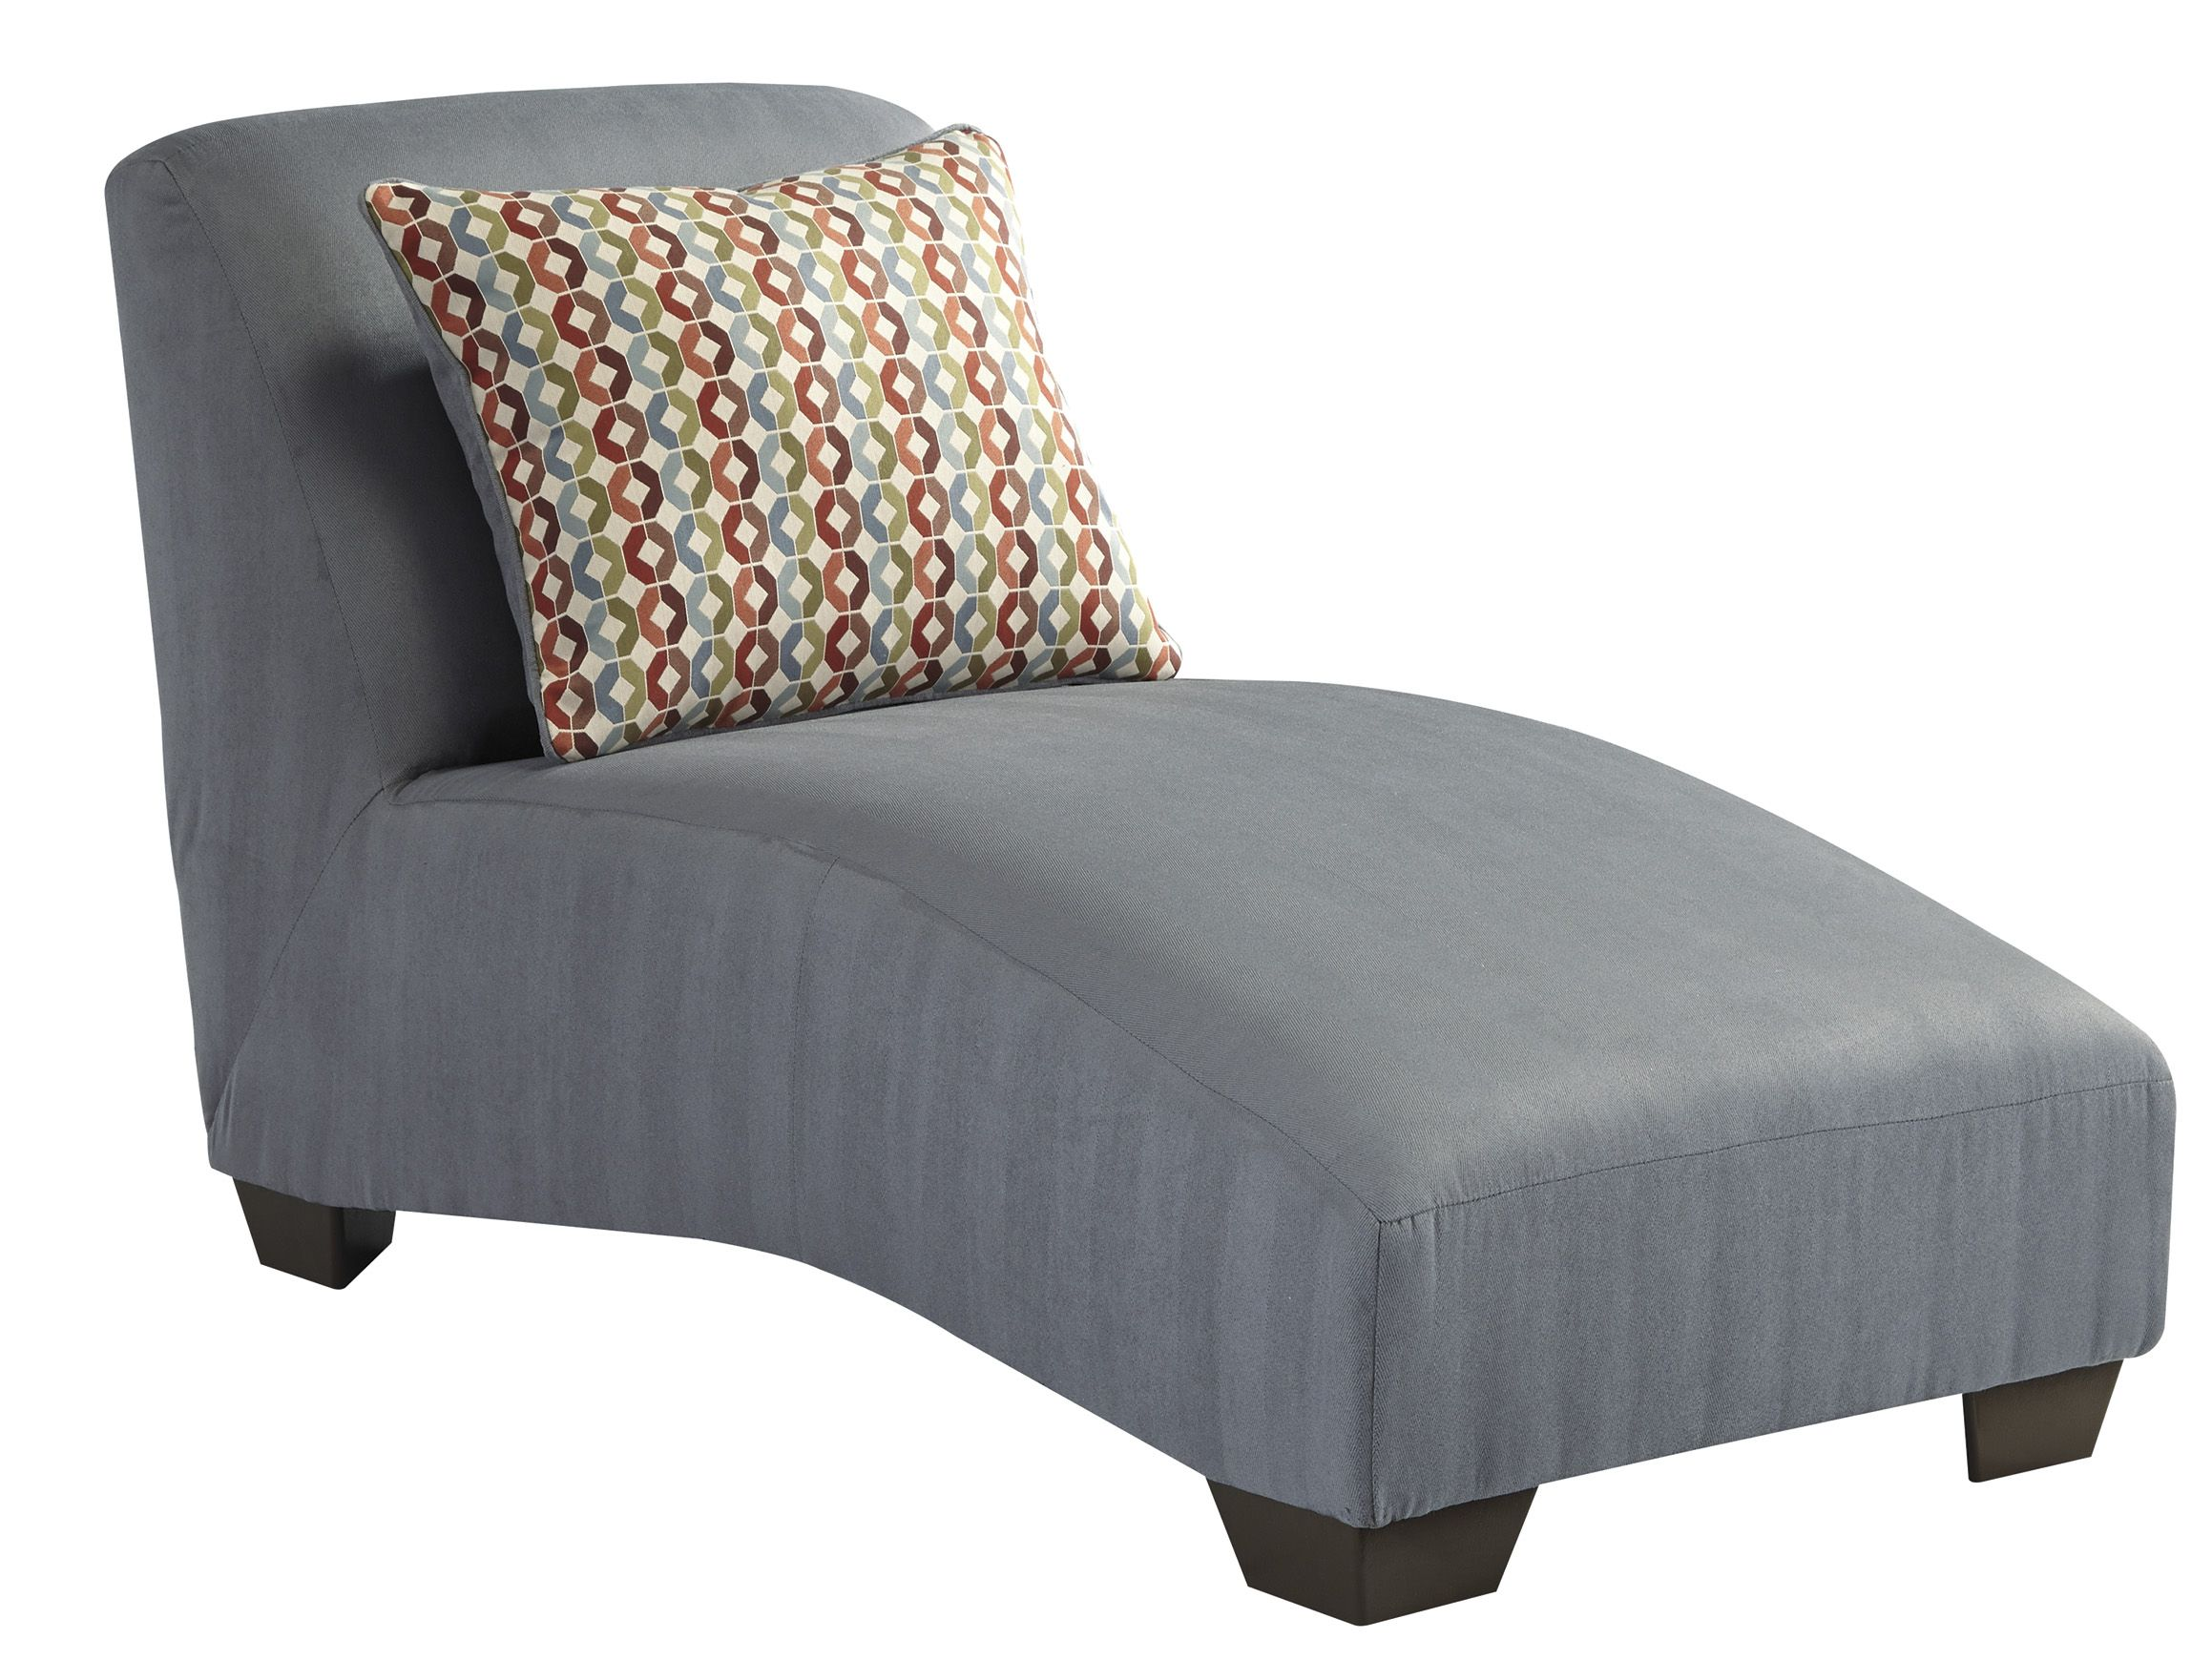 Buy Signature Design by Ashley 9580215 Chaise Lounges online ...